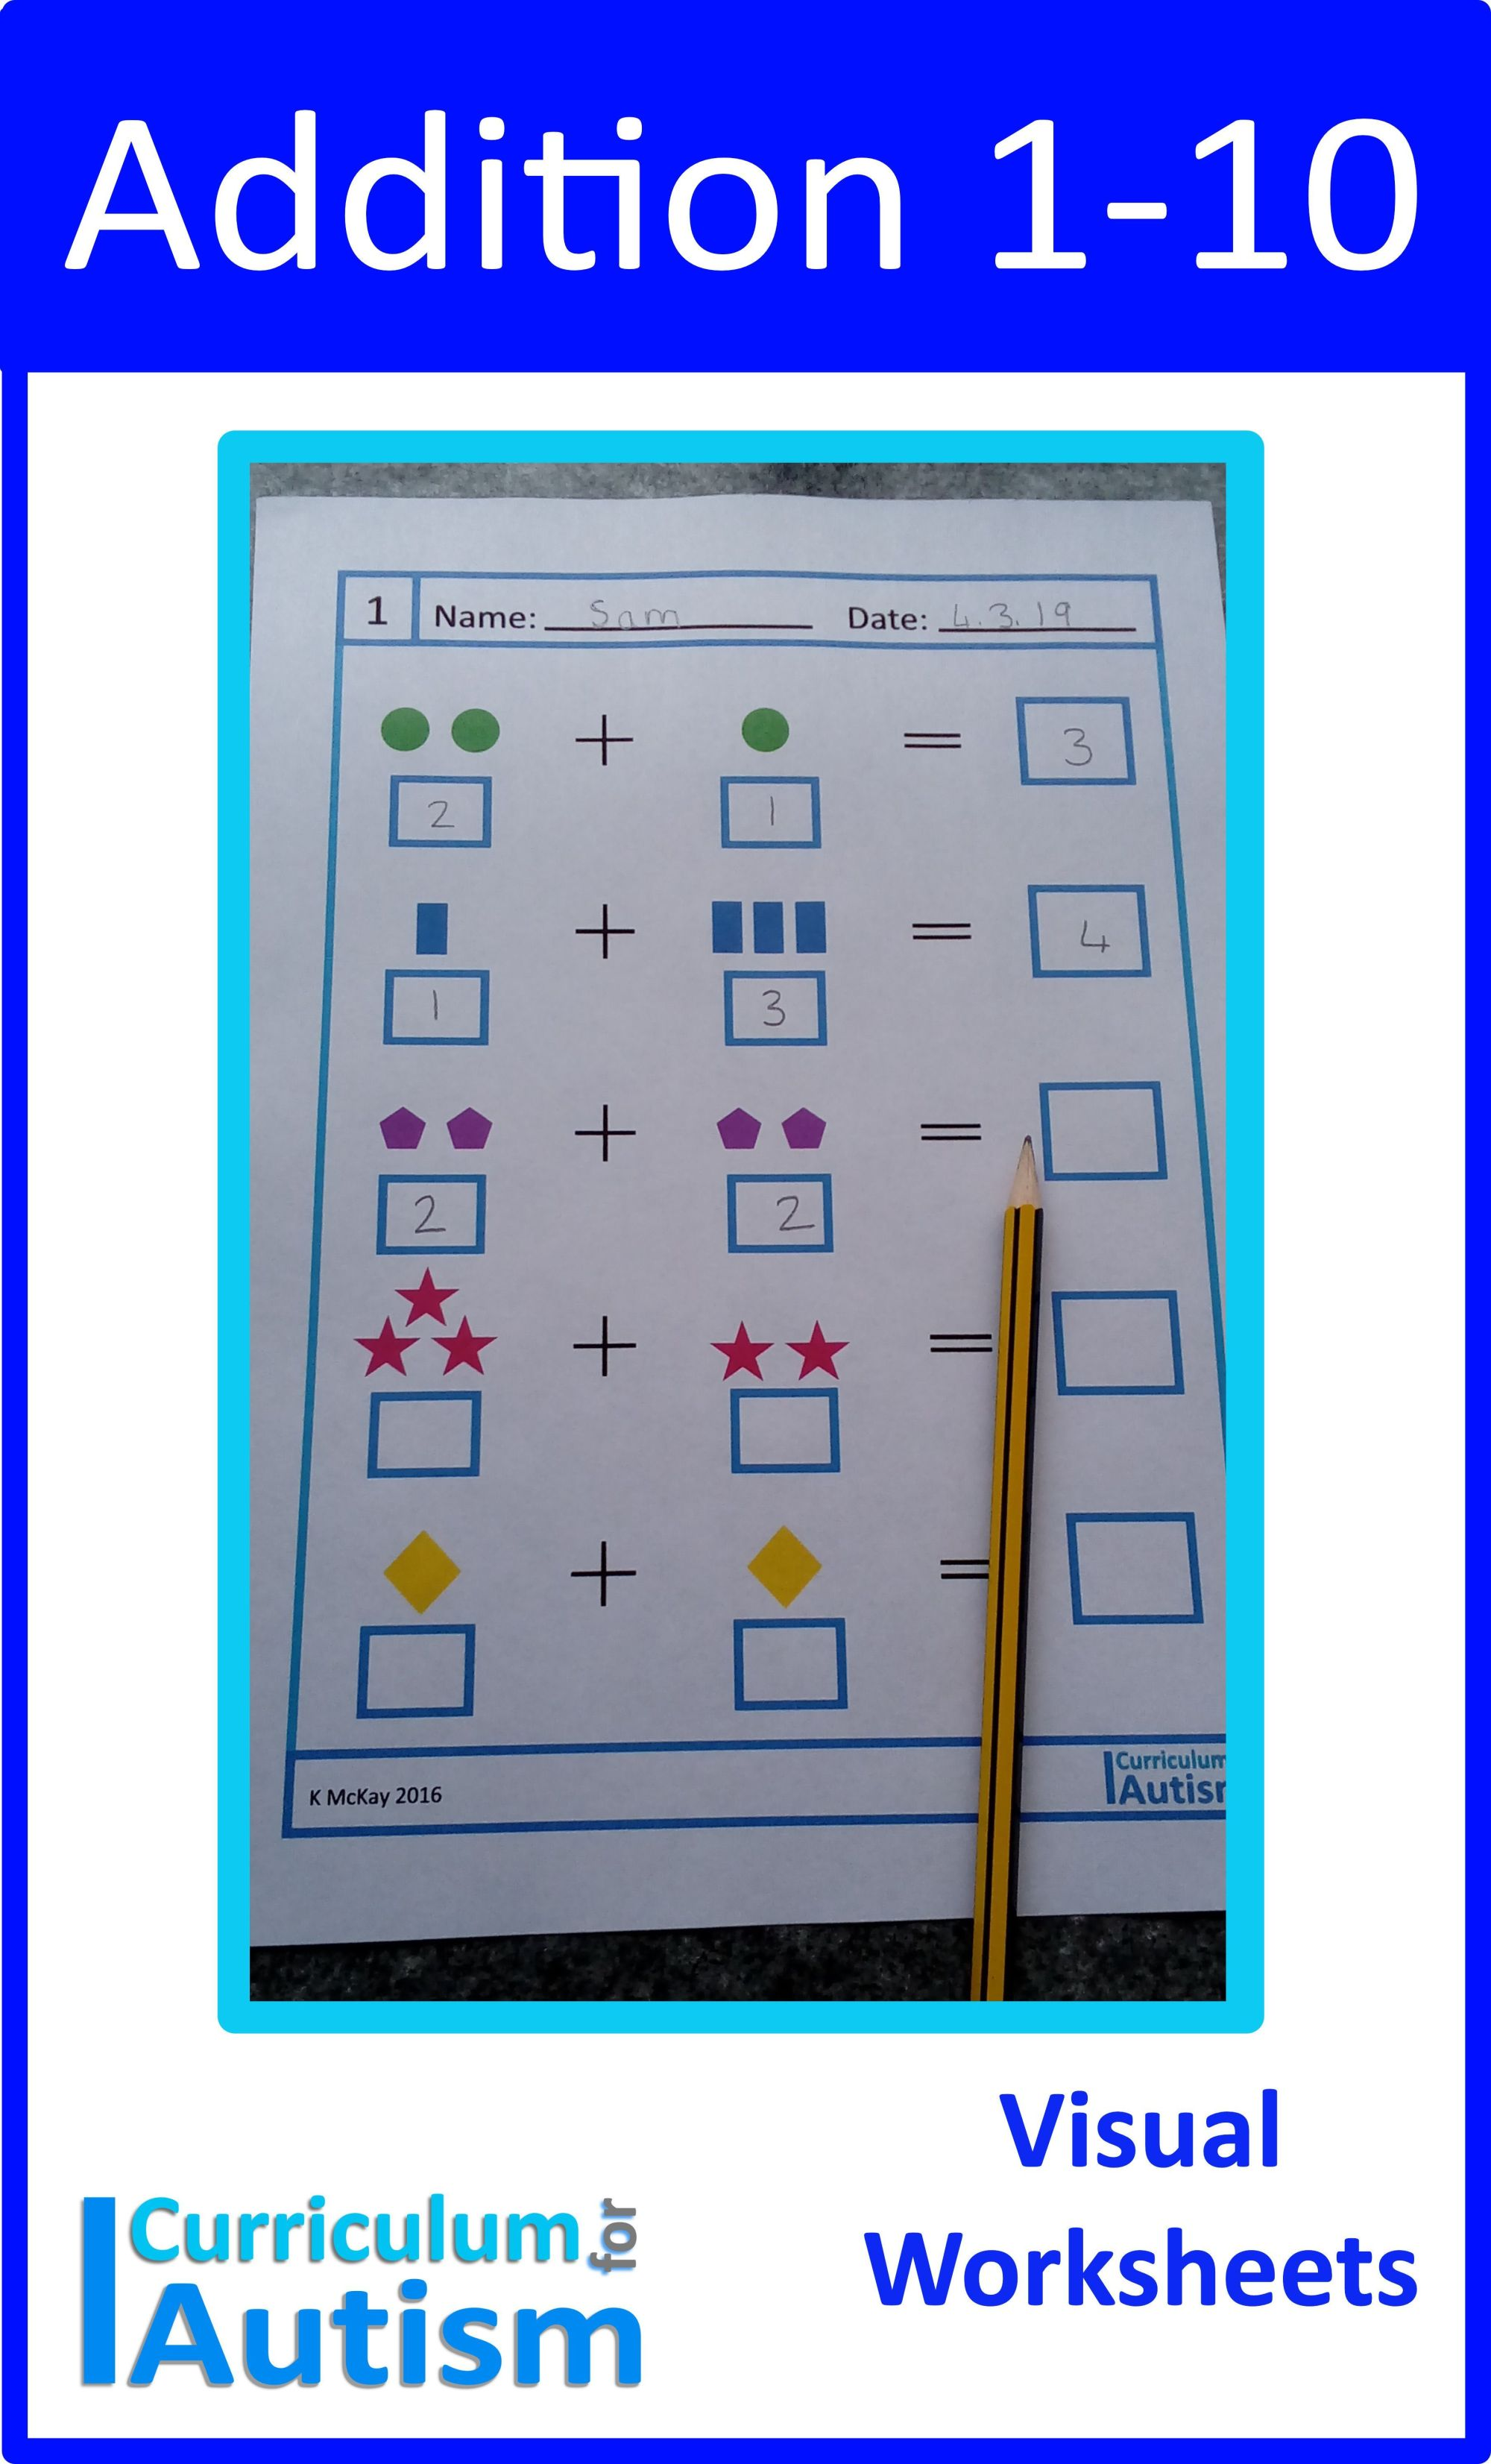 hight resolution of 21 Best Autism Worksheets images on Best Worksheets Collection